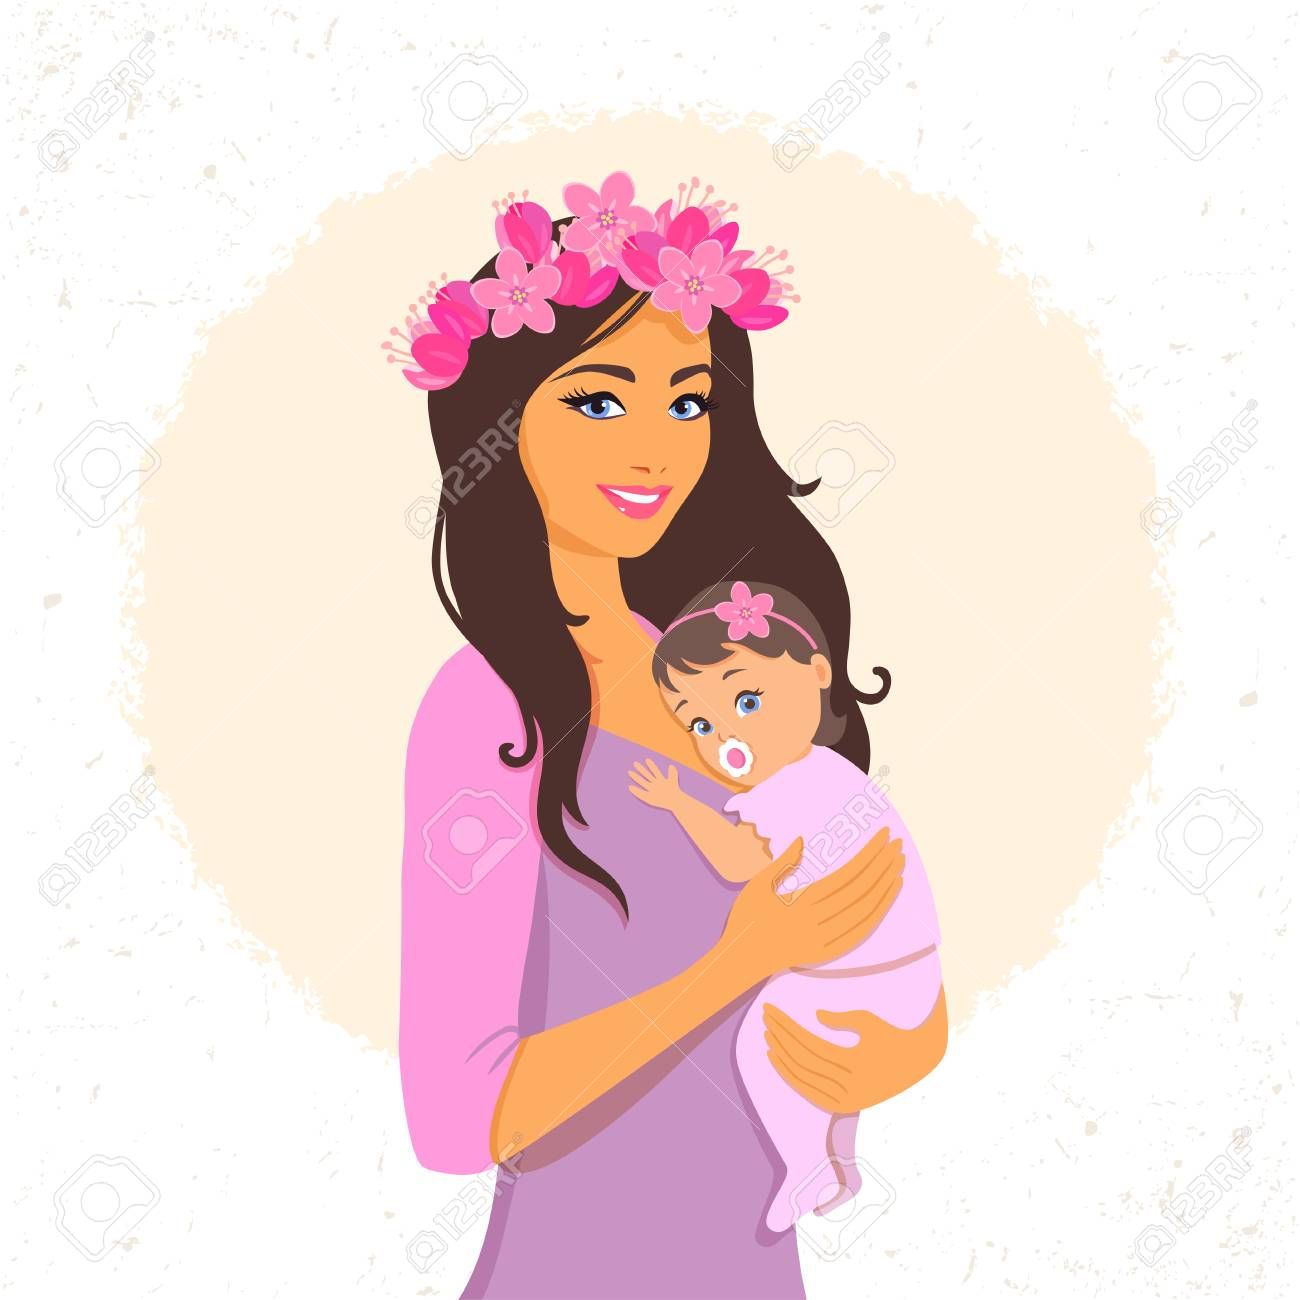 Beautiful And Cute Cartoon Mother With Baby Happy Motherhood Royalty Free Cliparts Vectors And Stock Illustration Image 79990787